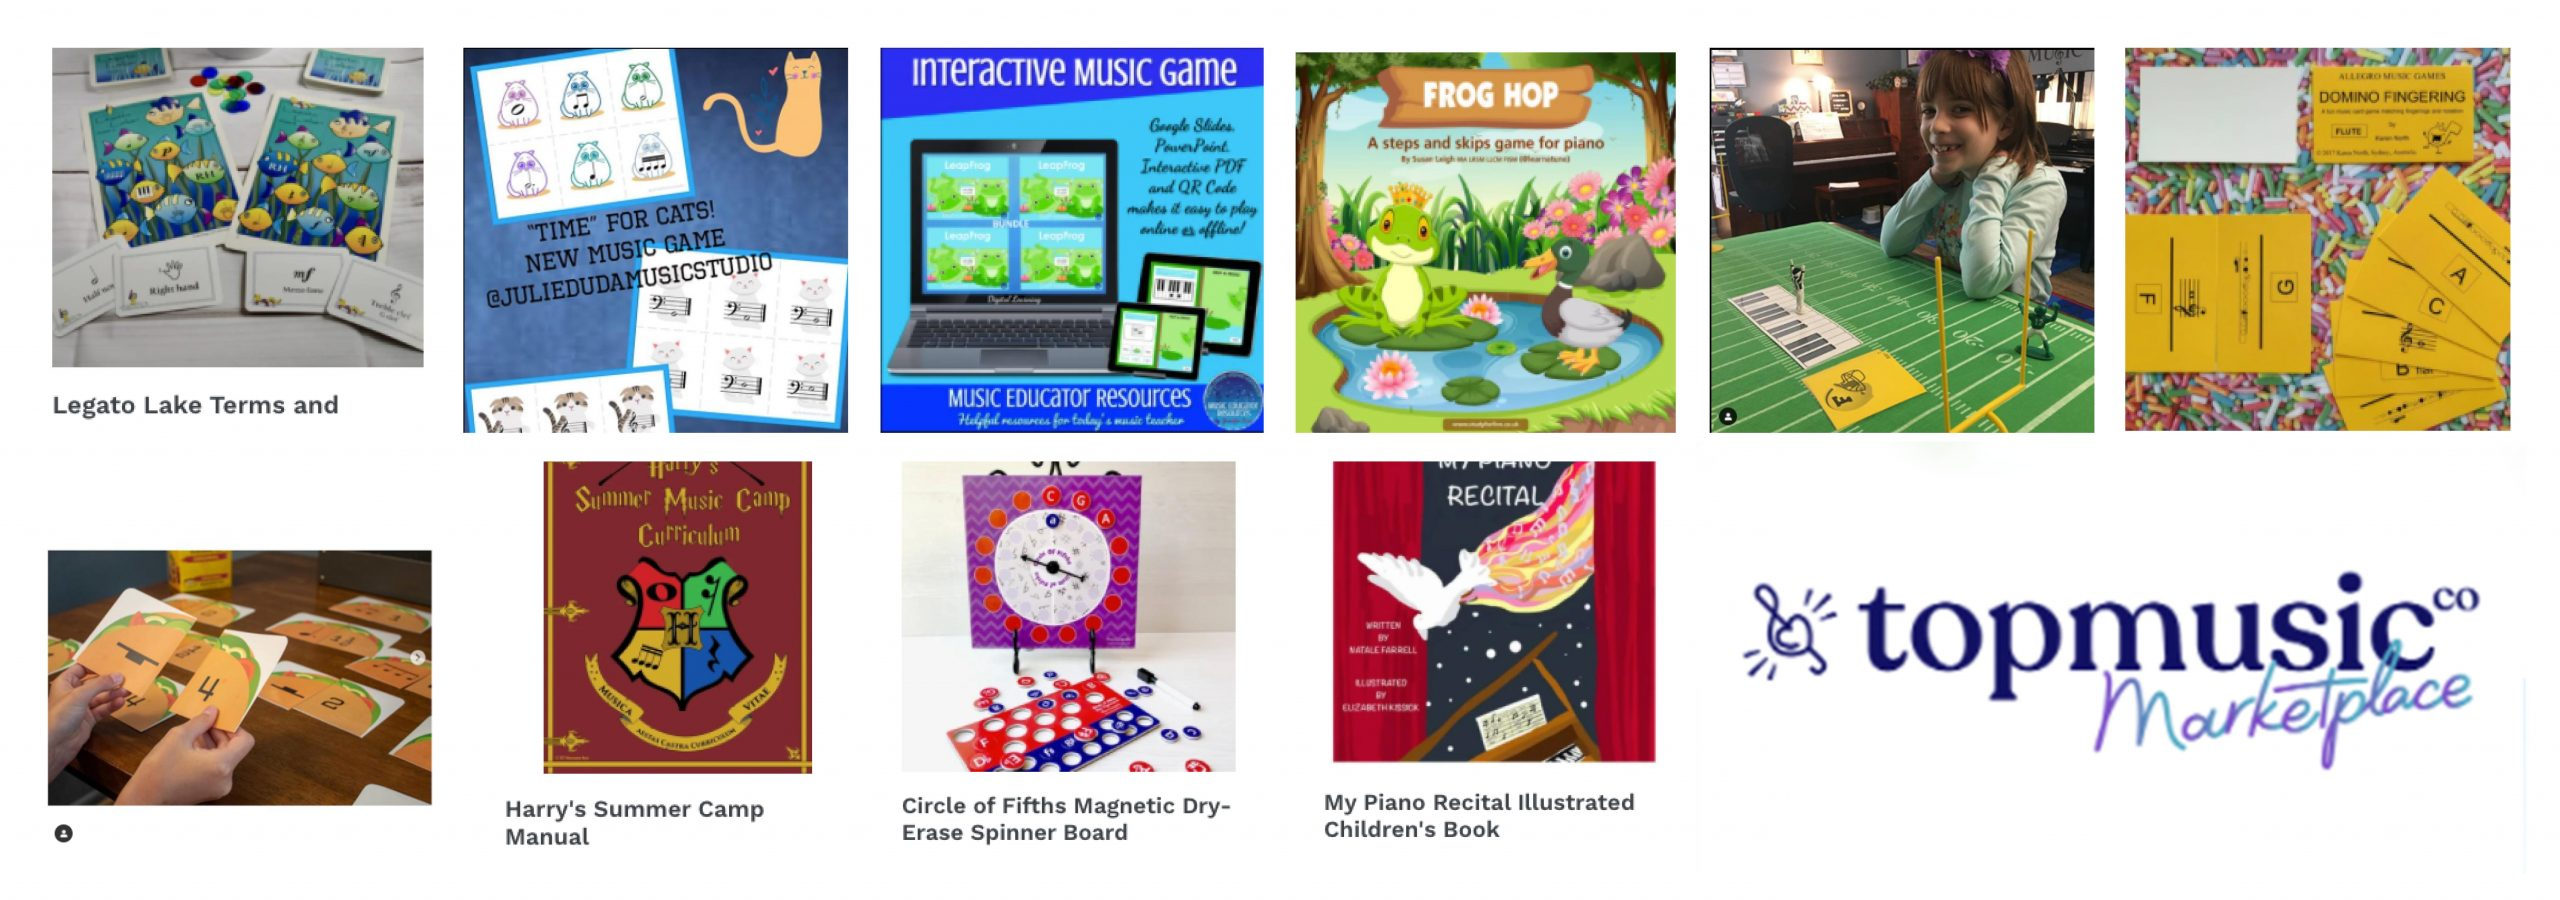 music theory games at topmusic marketplace